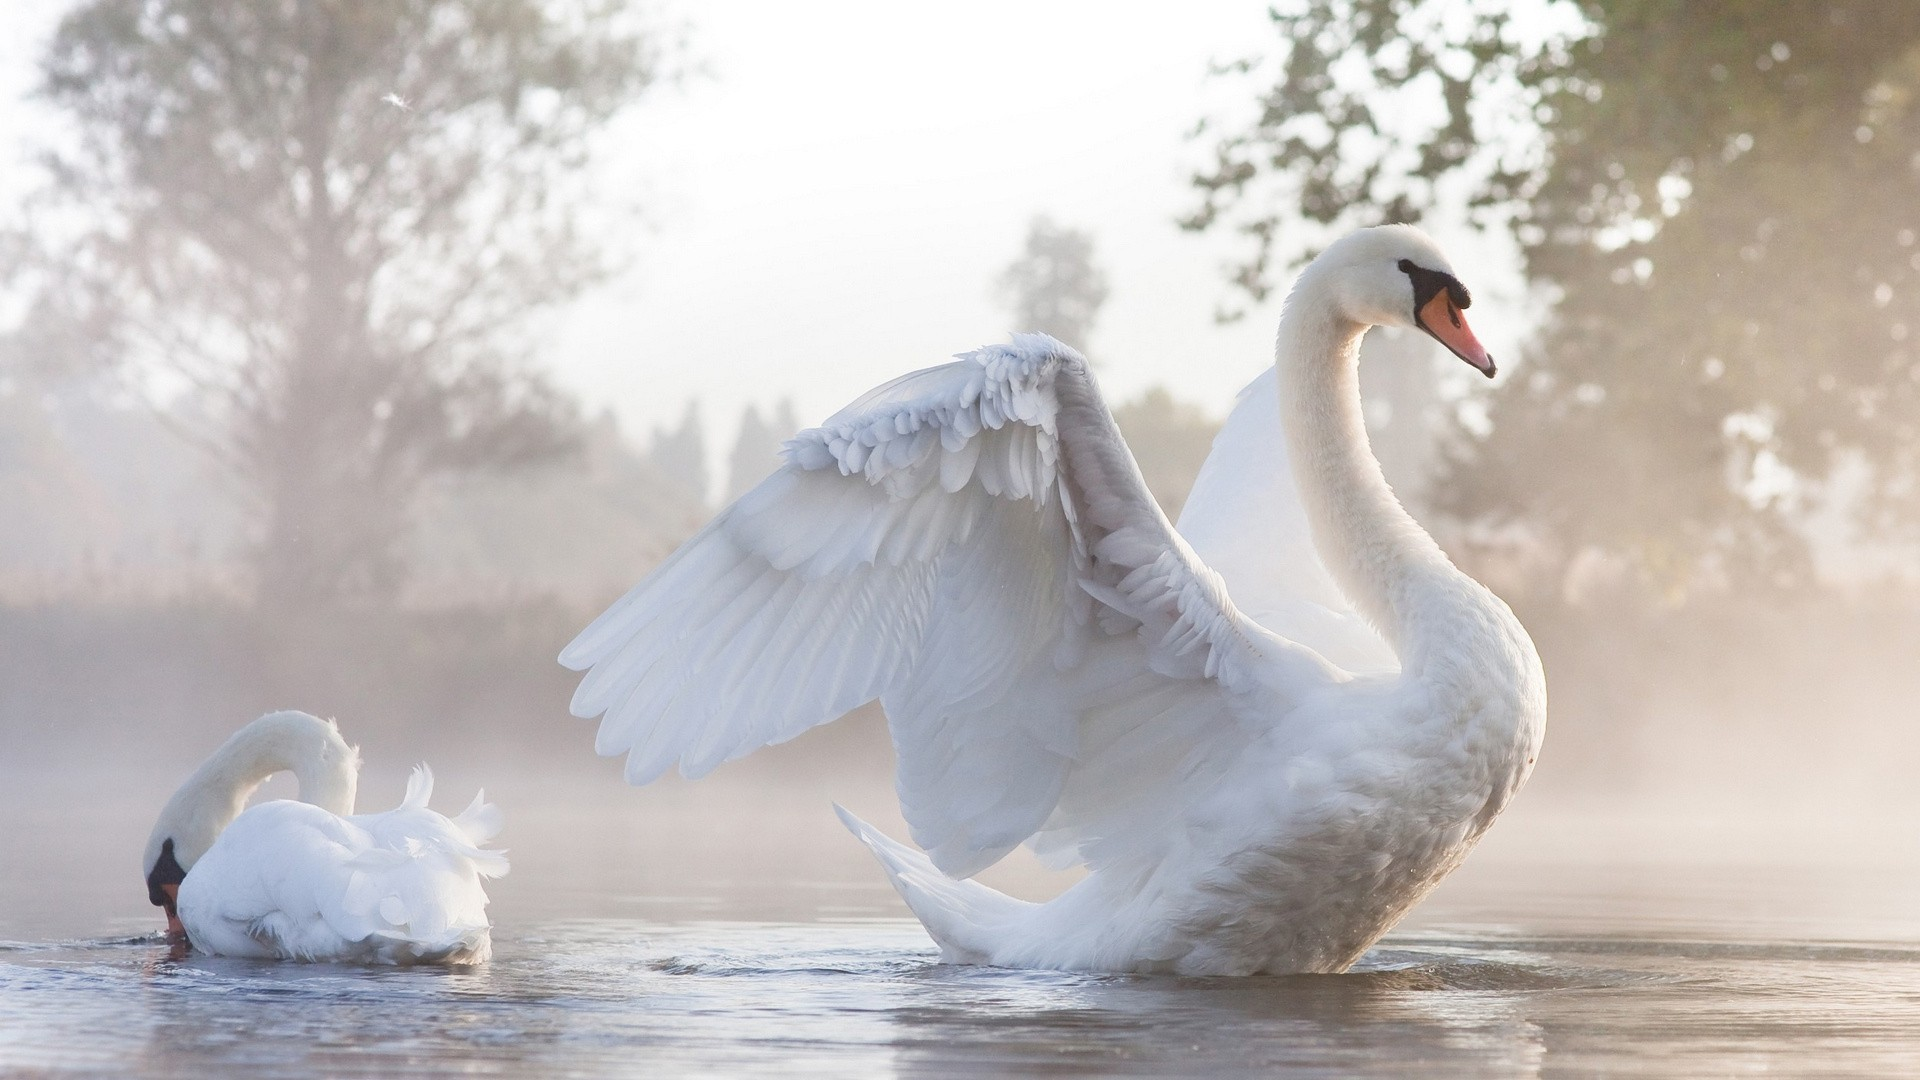 Res: 1920x1080, Swan wallpapers by Twalls